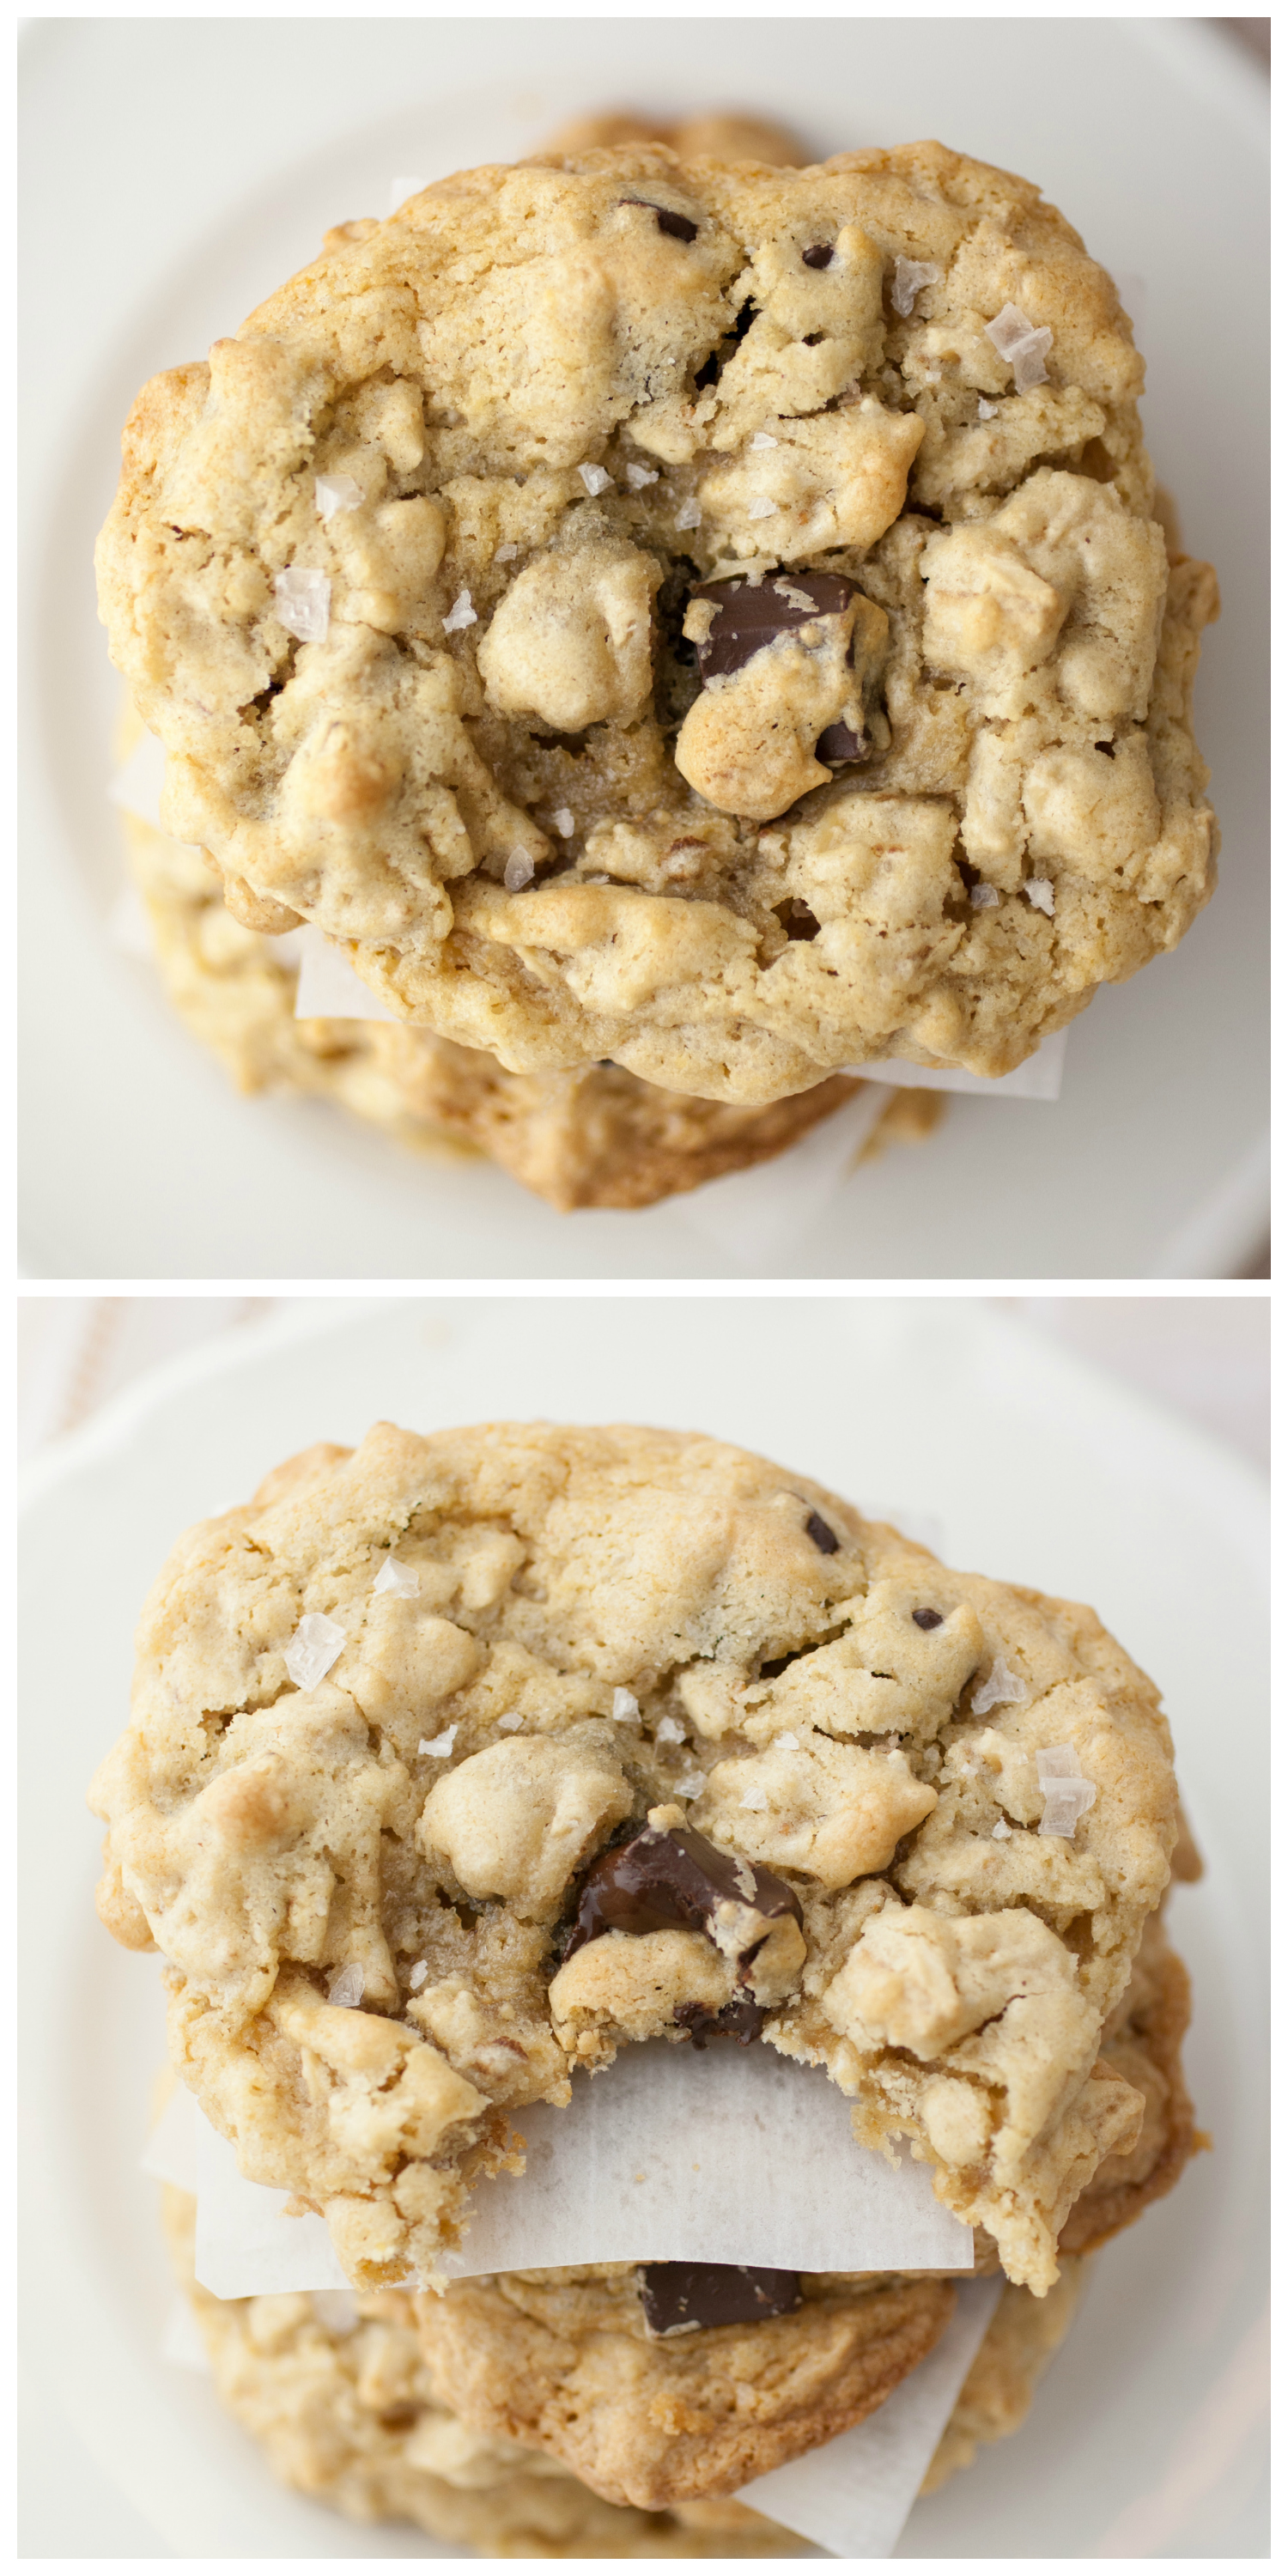 Produce On Parade - Salted Peanut Butter Chocolate Chip Oatmeal Cookies